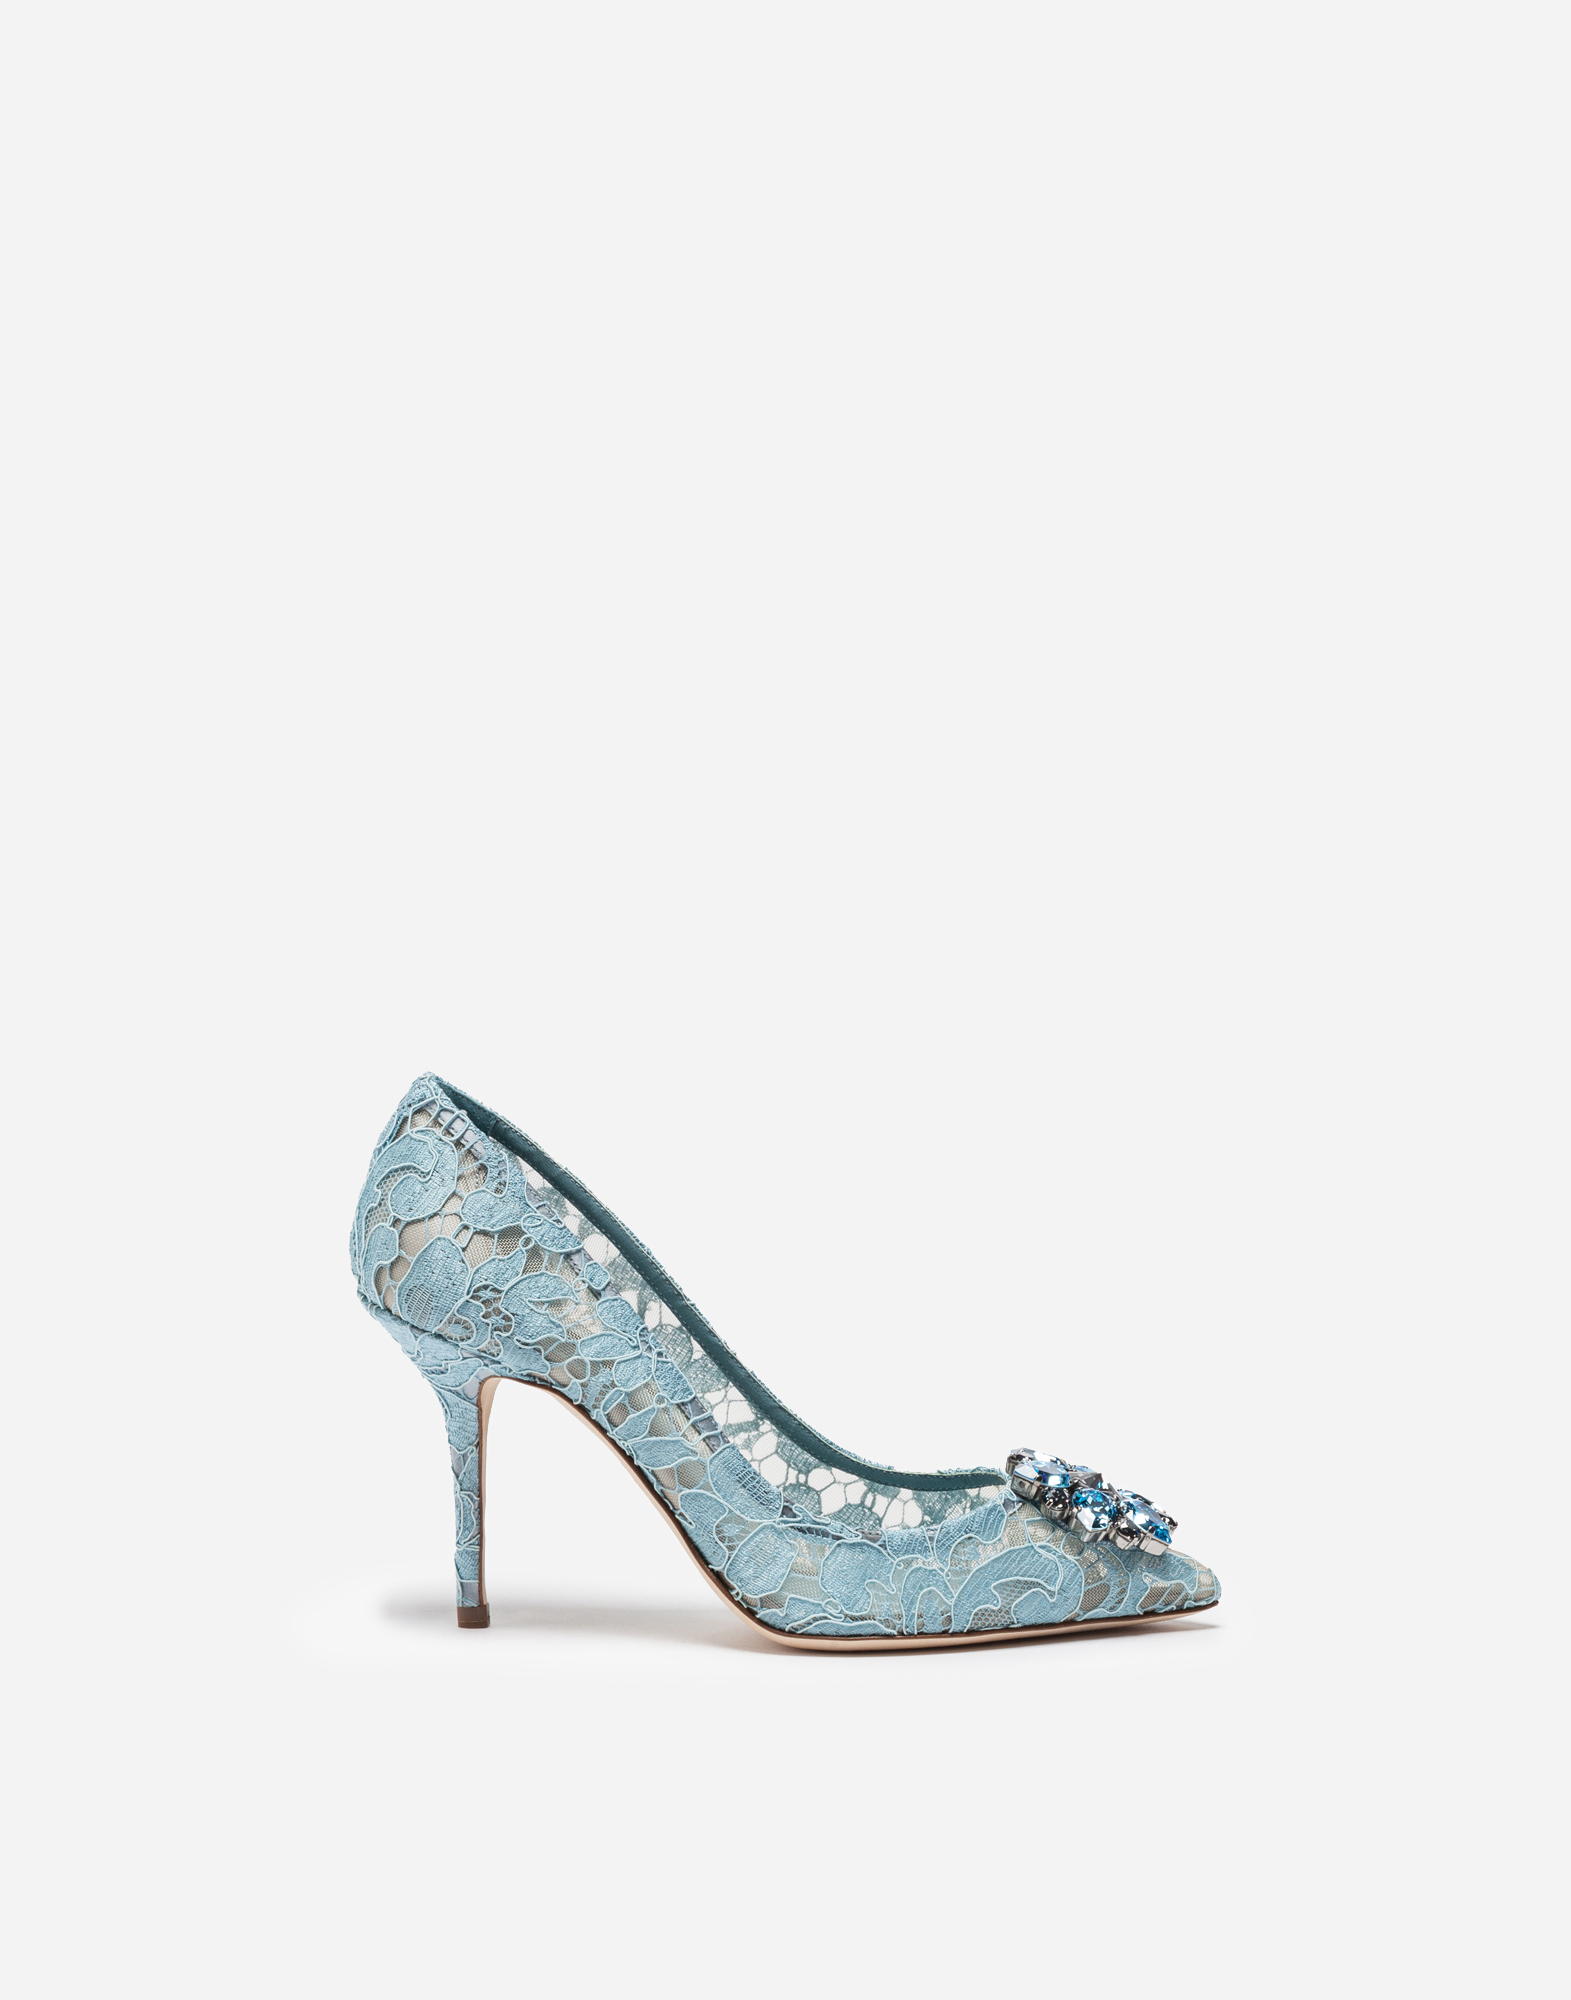 PUMPS IN TAORMINA LACE WITH CRYSTALS